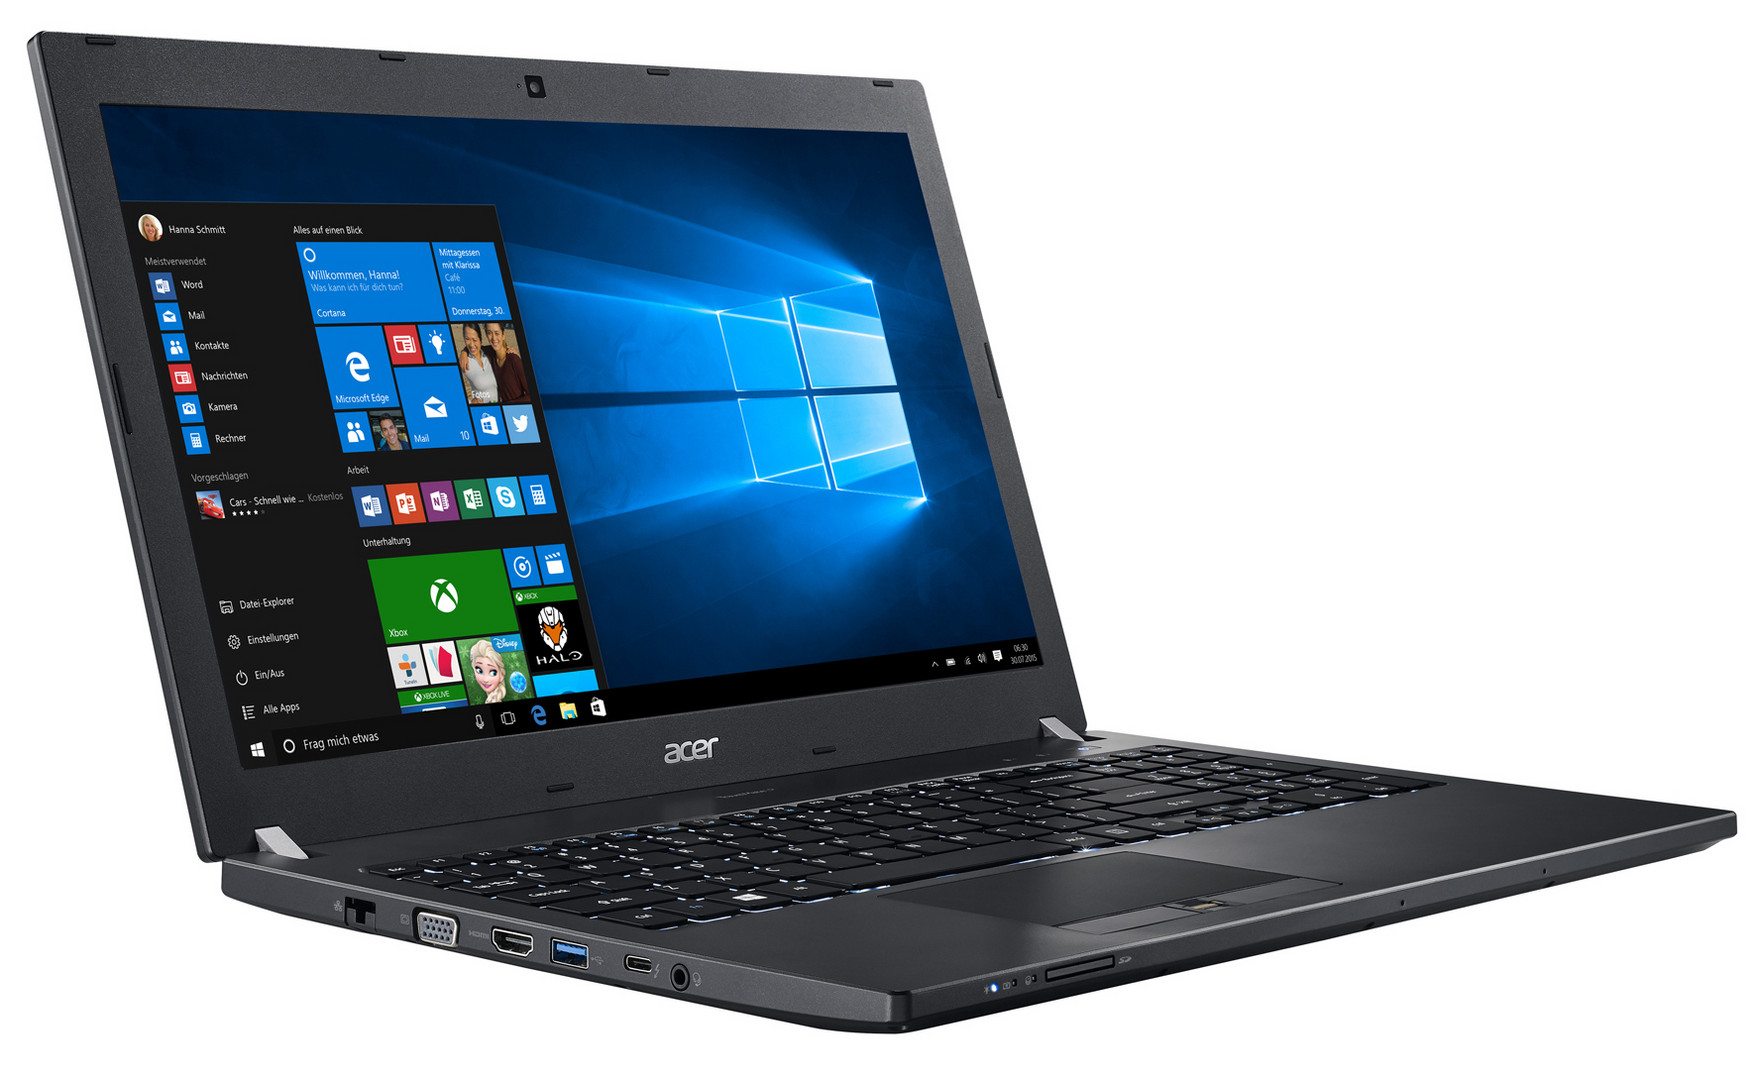 Acer TravelMate P658-MG Realtek Audio Driver for Windows 7